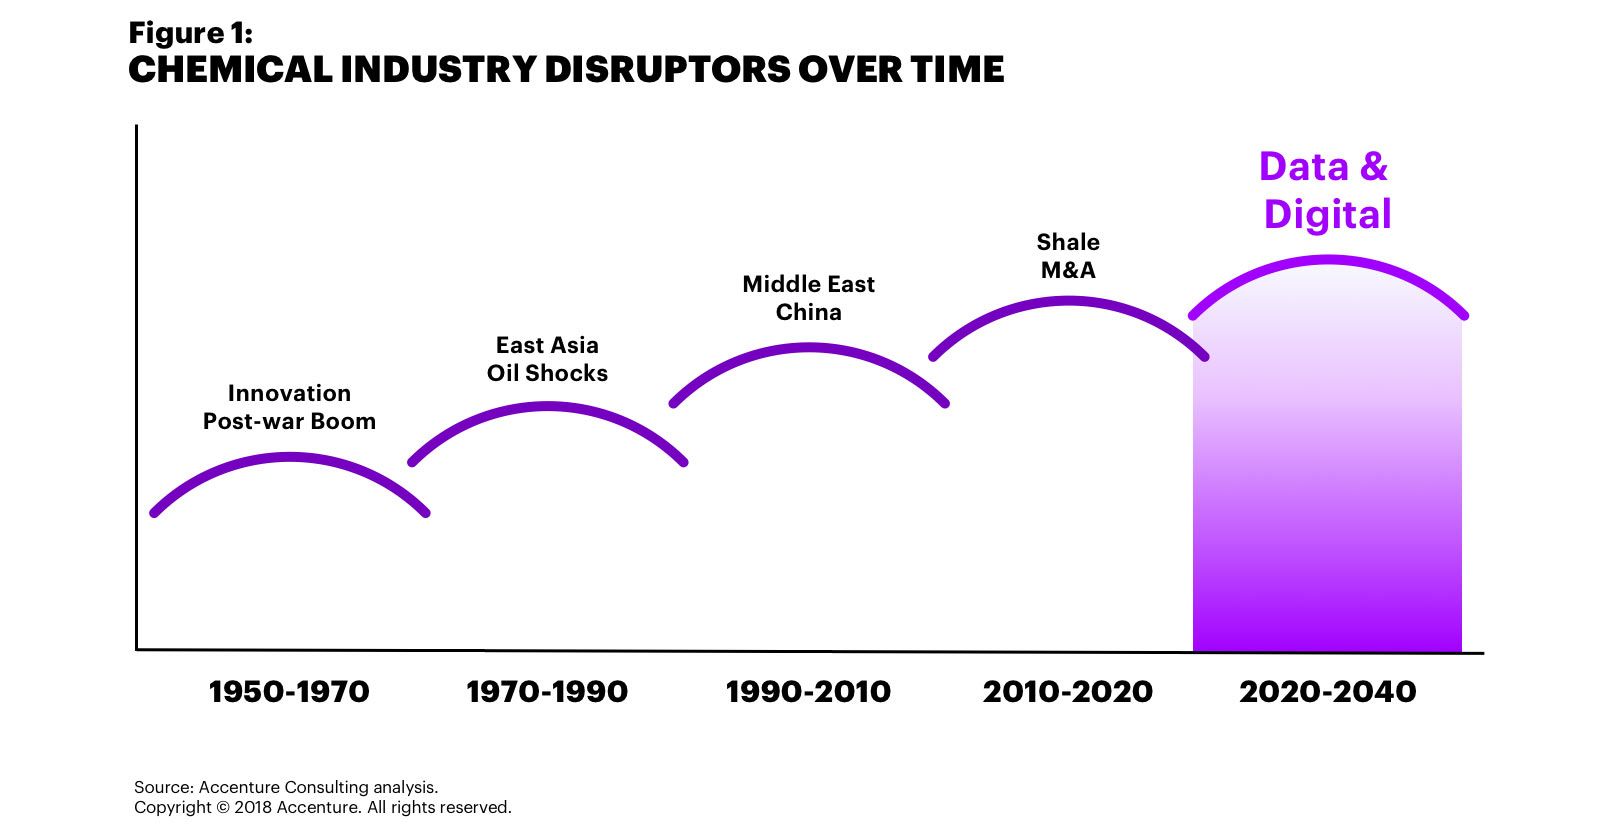 Figure 1 shows chemical industry disruptions, starting with plastics in the 1950s, oil shocks in the 1970s and 1980s and recently shale. Disruption occurs about every 20 years, looking ahead it appears to be shifting to data and digital technologies.